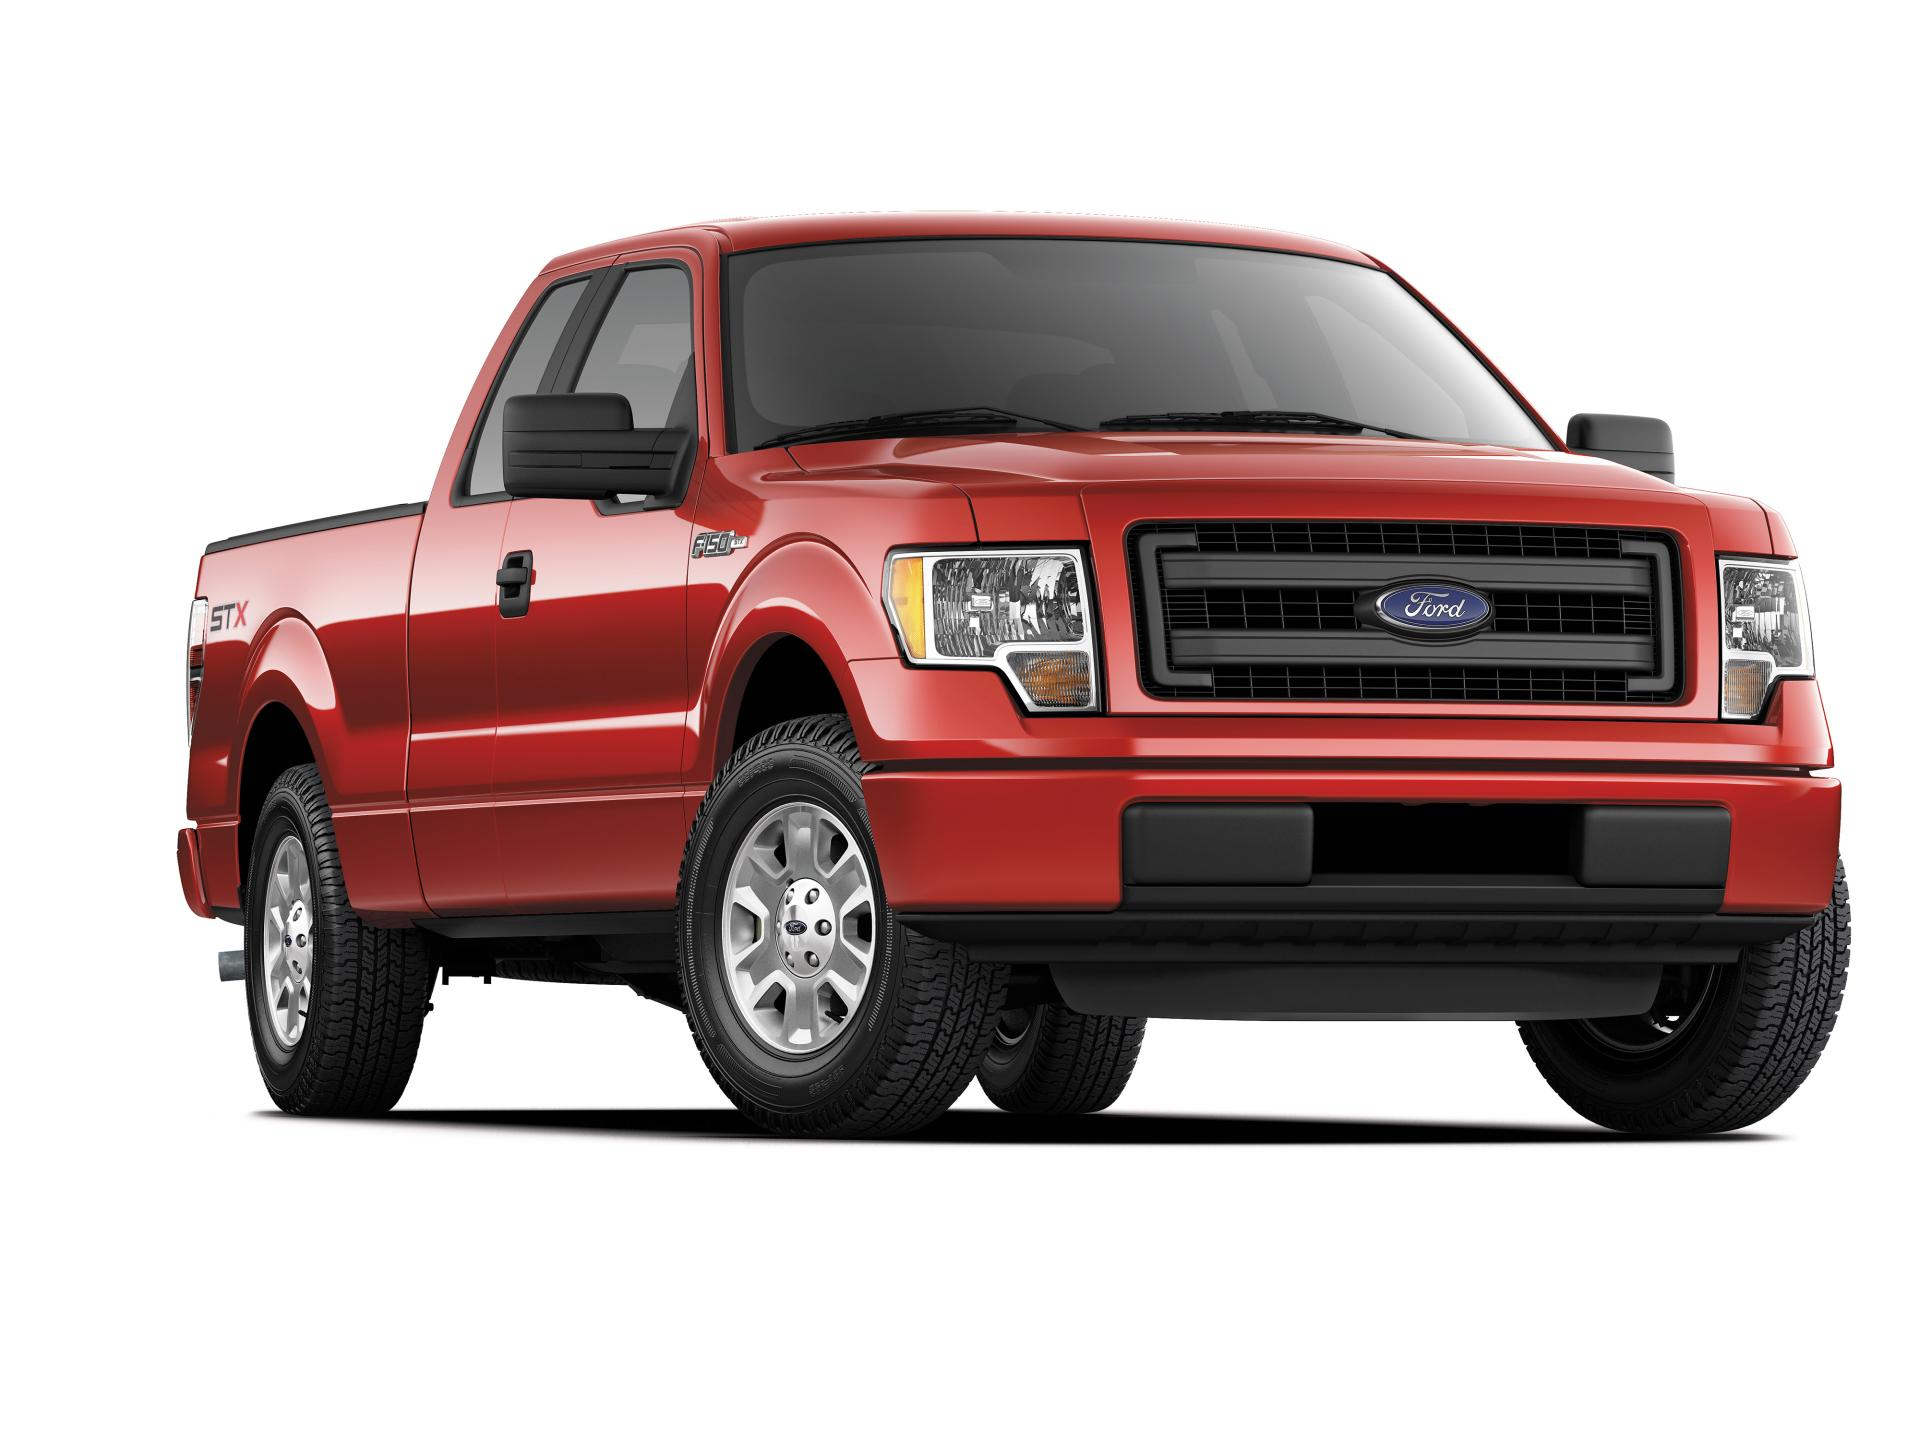 2014 Ford F 150 Stx News And Information International 4700 Cab Wiring Diagram